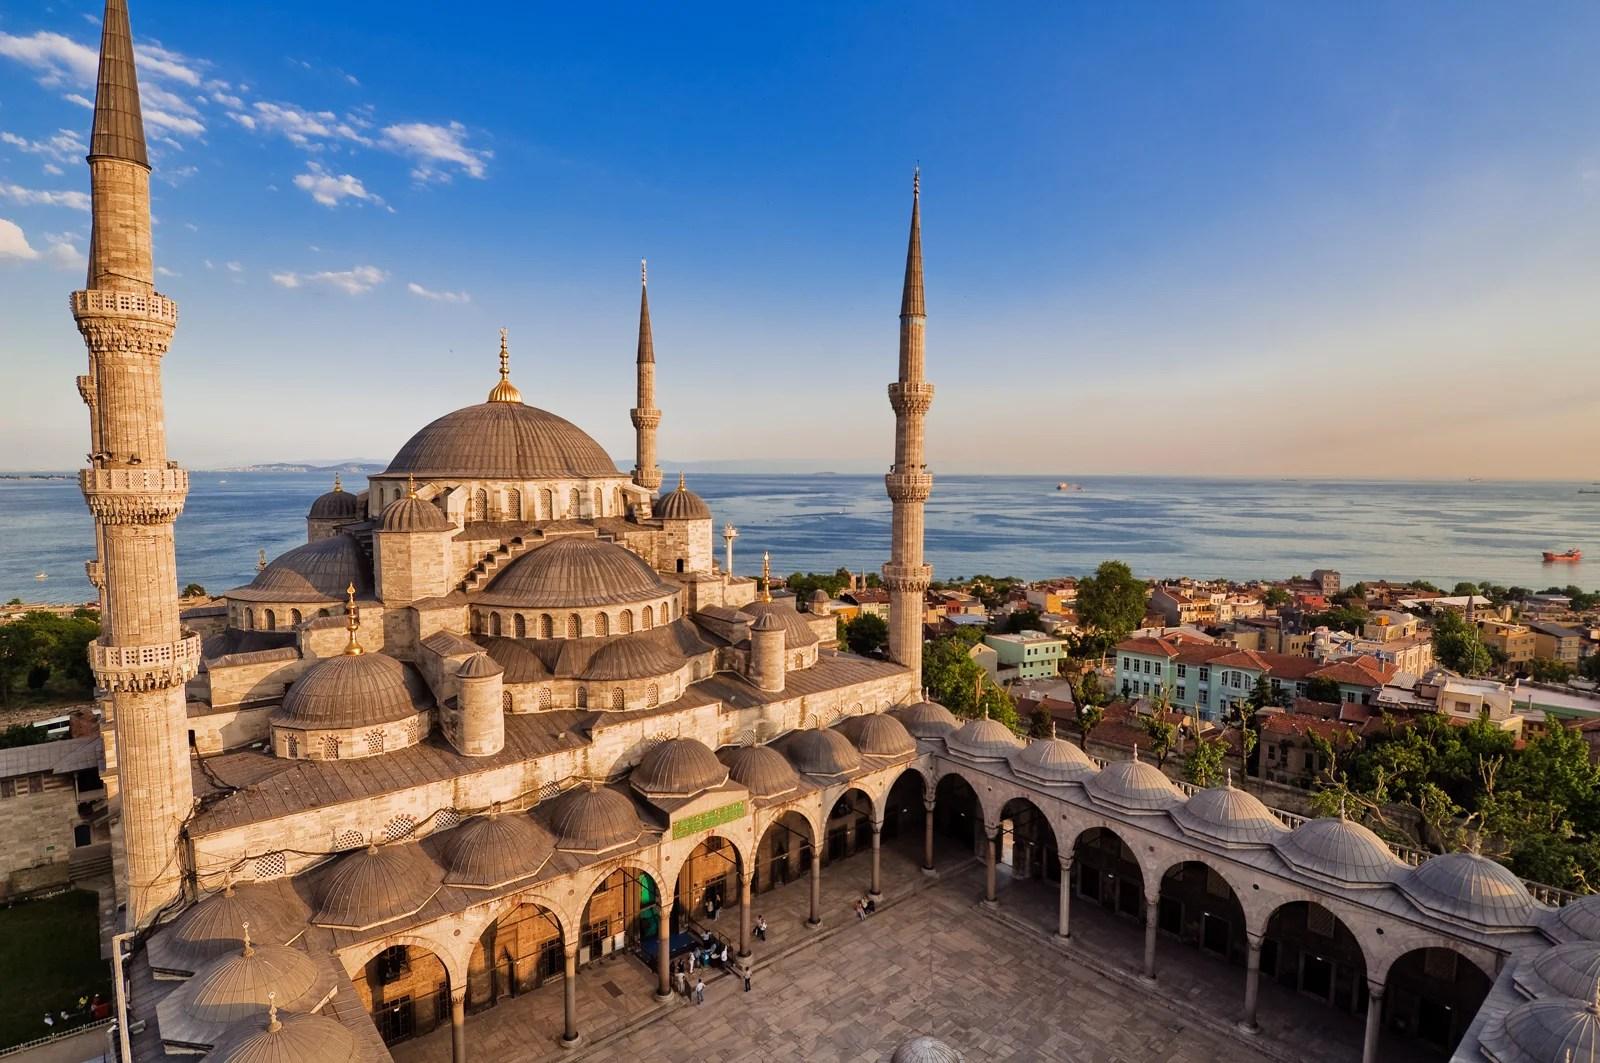 Second Cities: The best destinations to add onto a trip to Istanbul